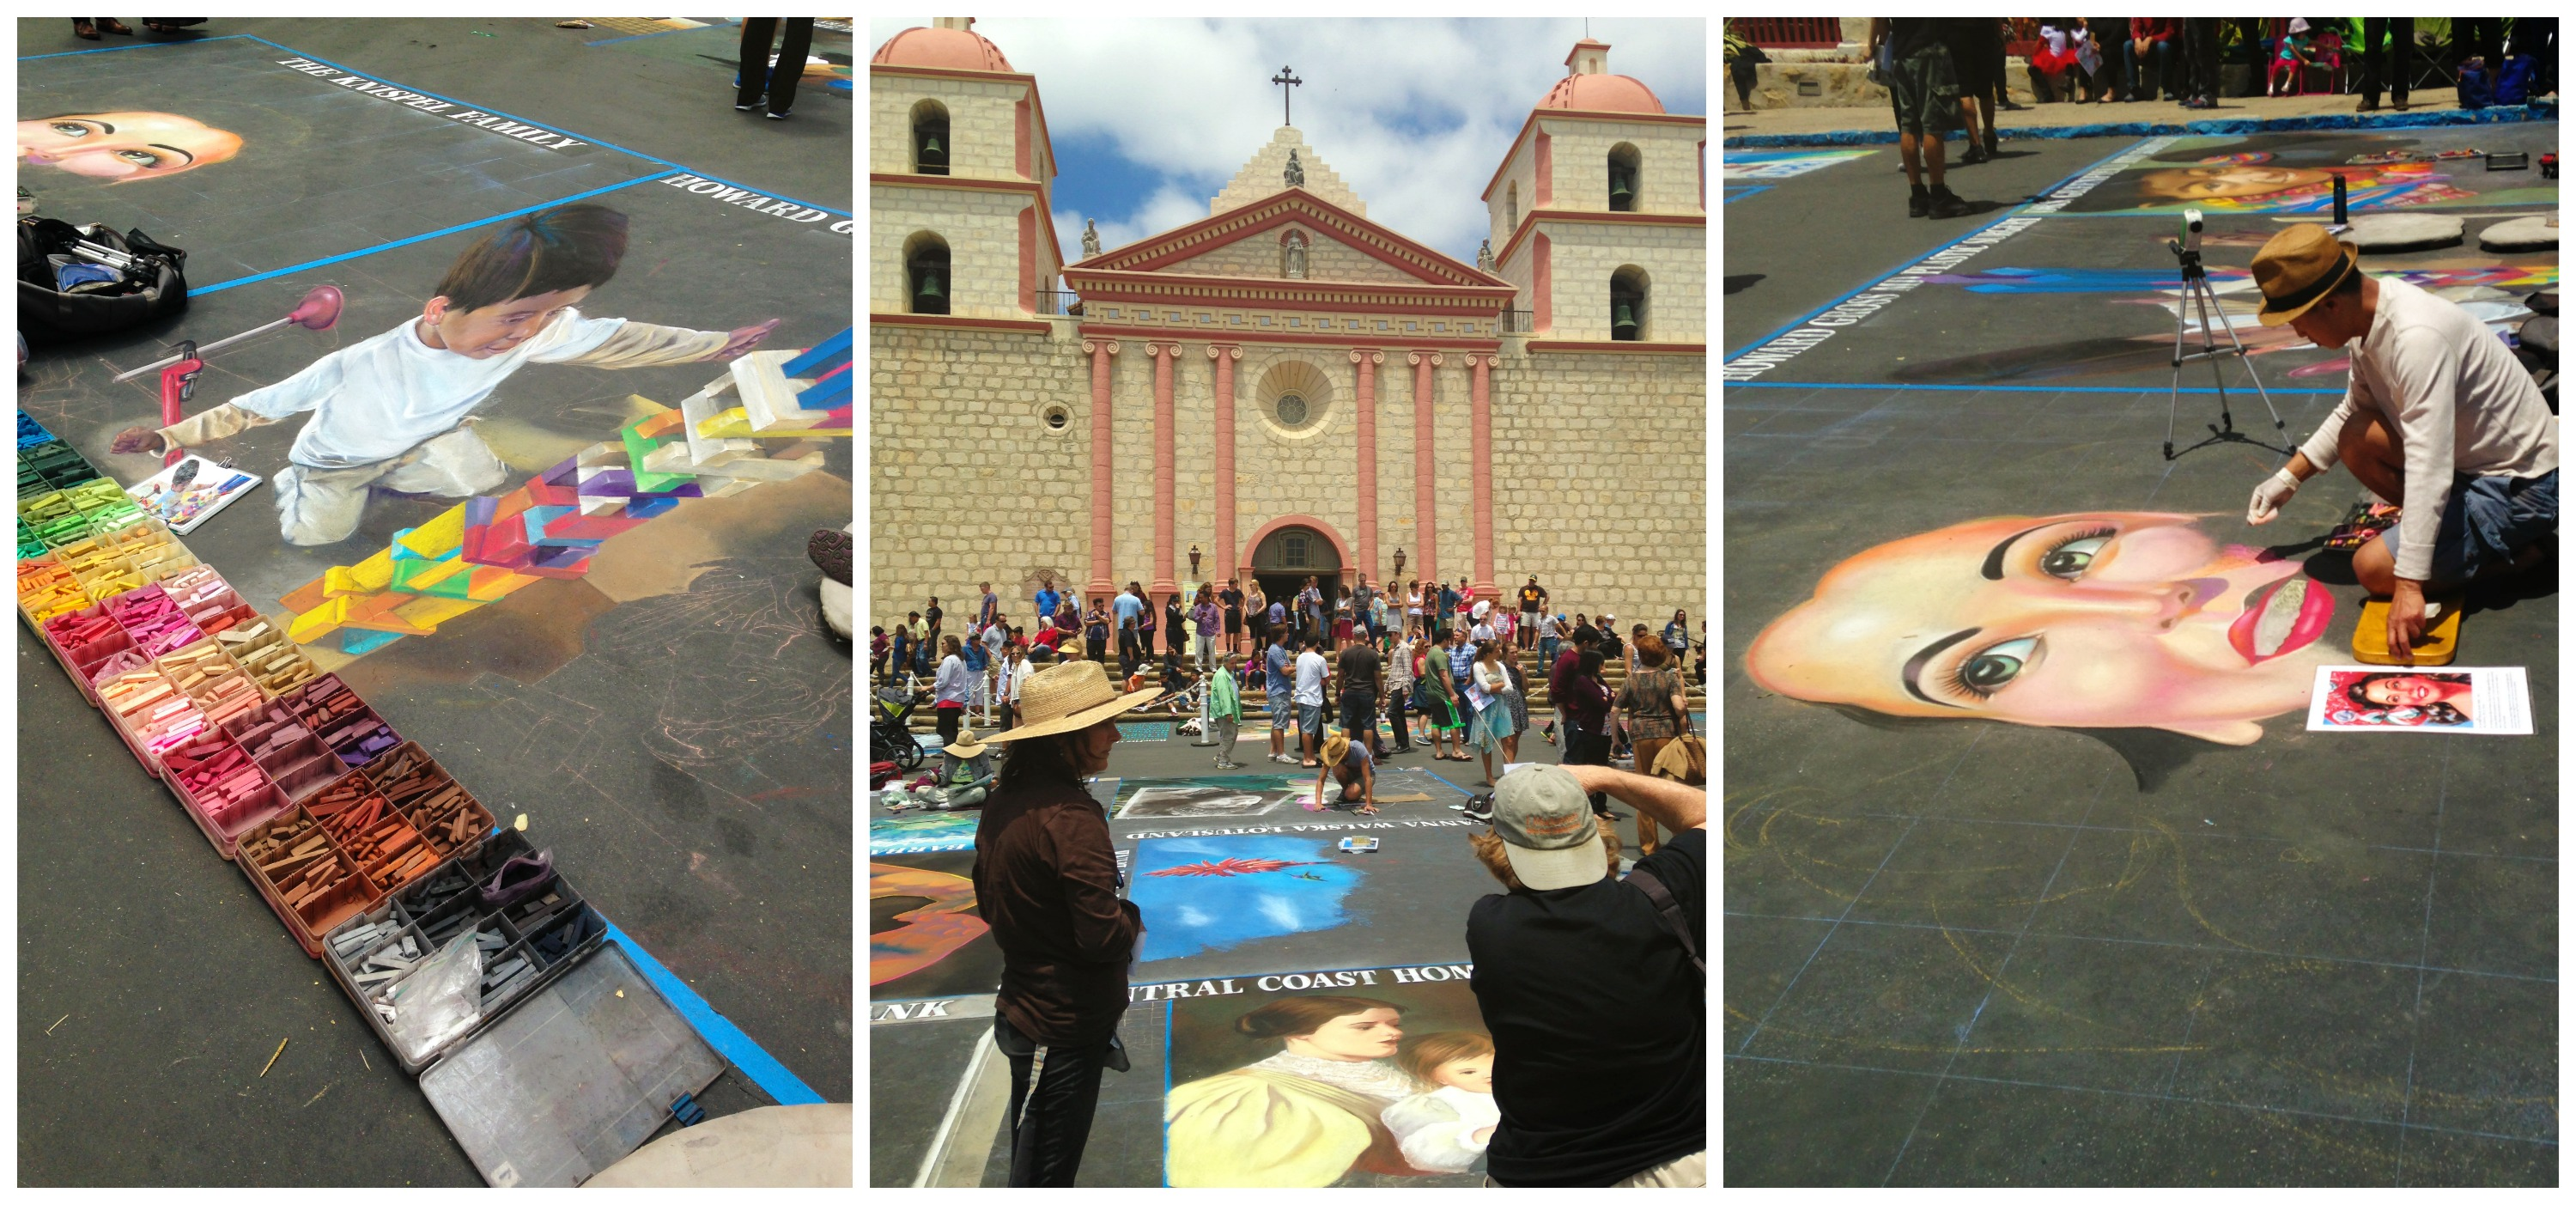 Checked out the I Madonnari Festival  this past weekend. An italian inspired festival  at the Santa Barbara Mission, that benefits the Children's Creative Project sponsored by local businesses. -Kari Jensen